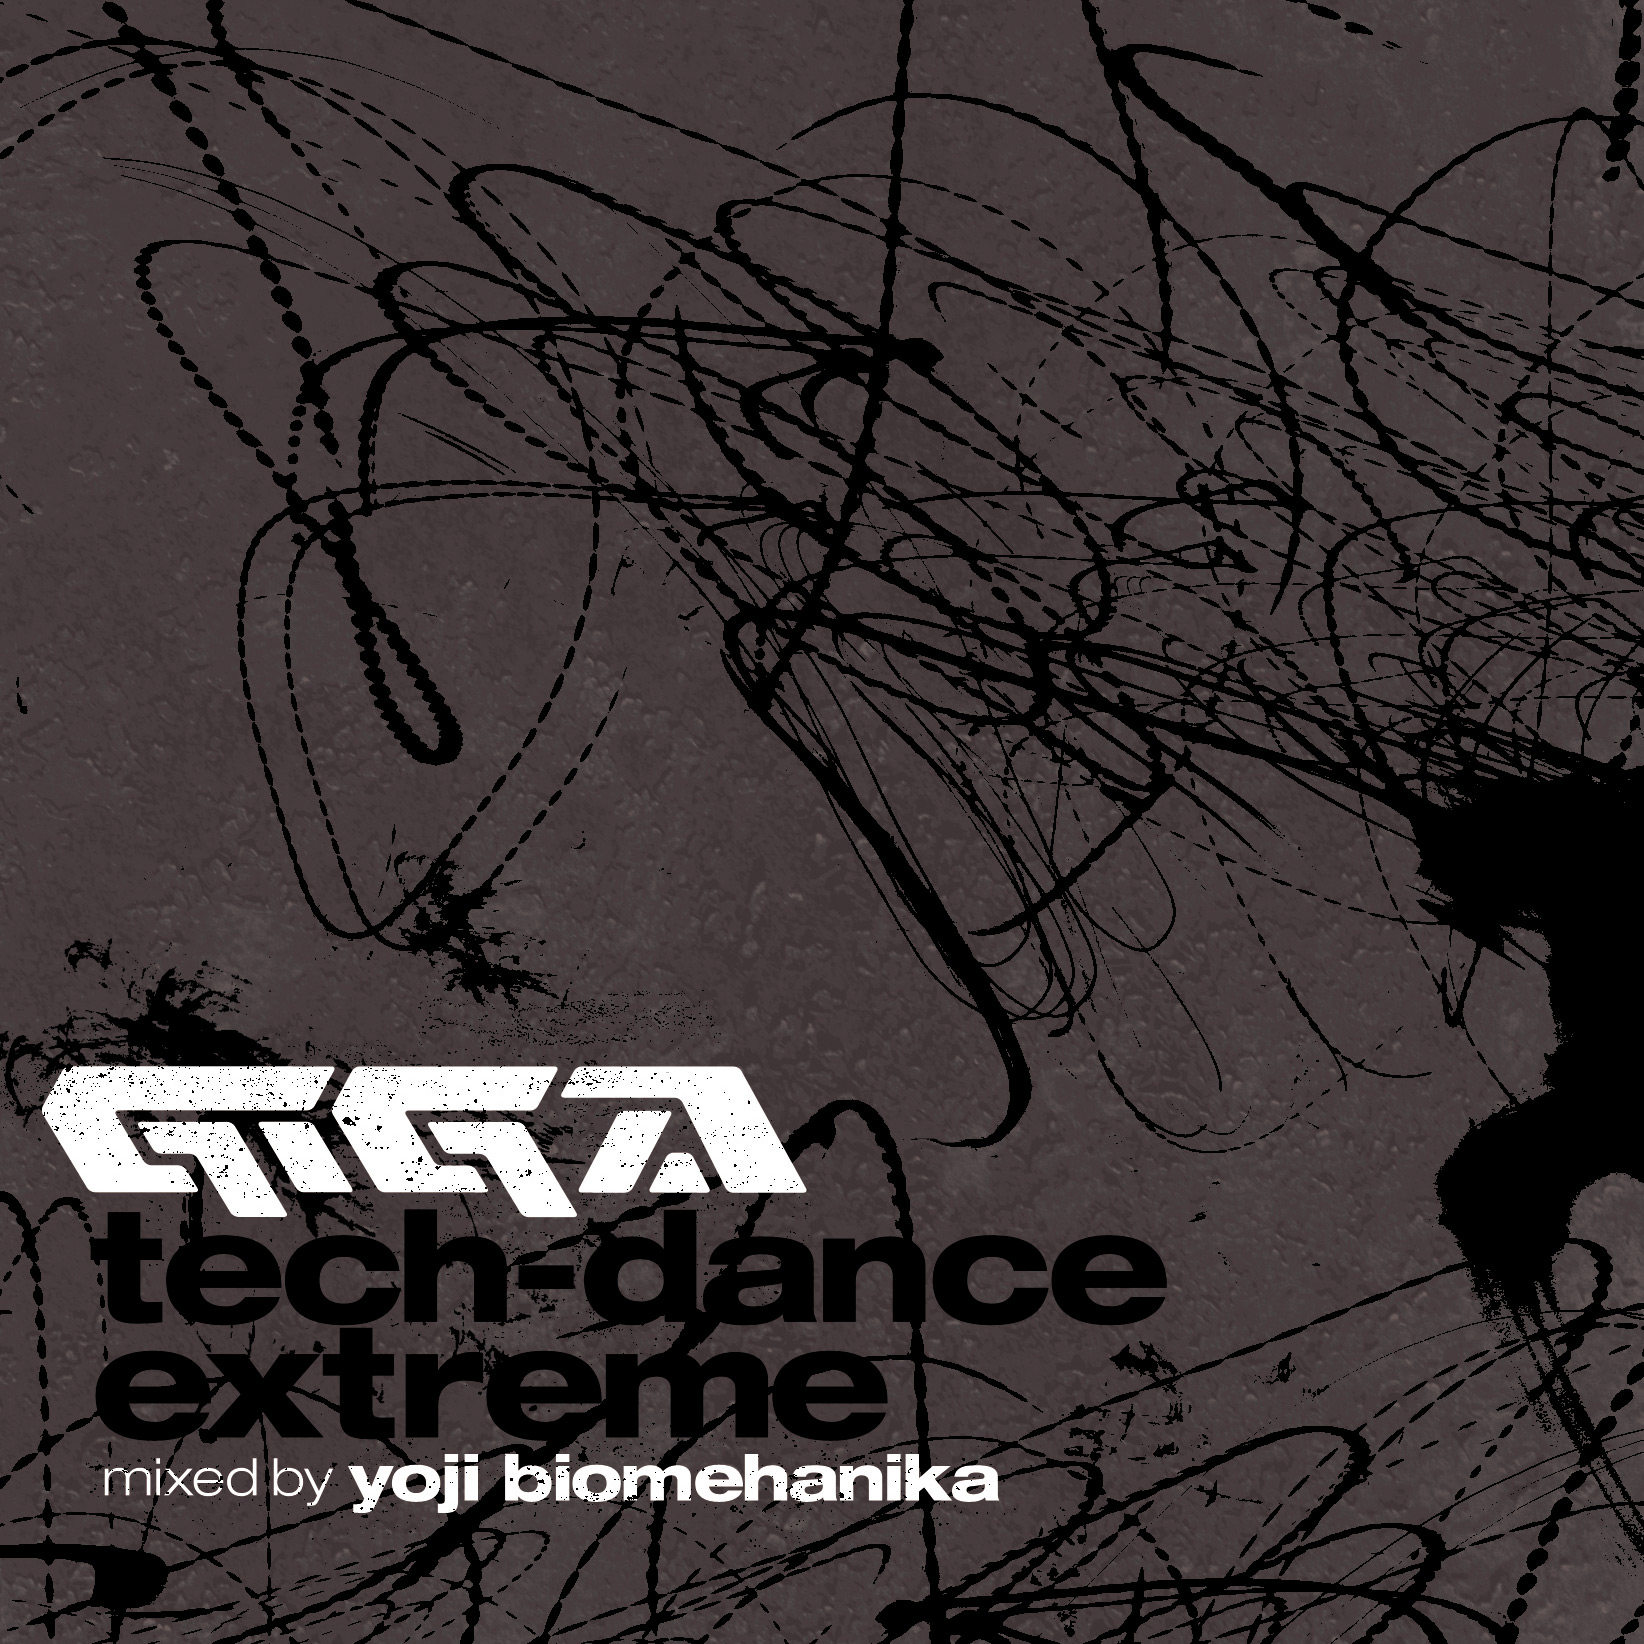 GIGA tech-dance extreme